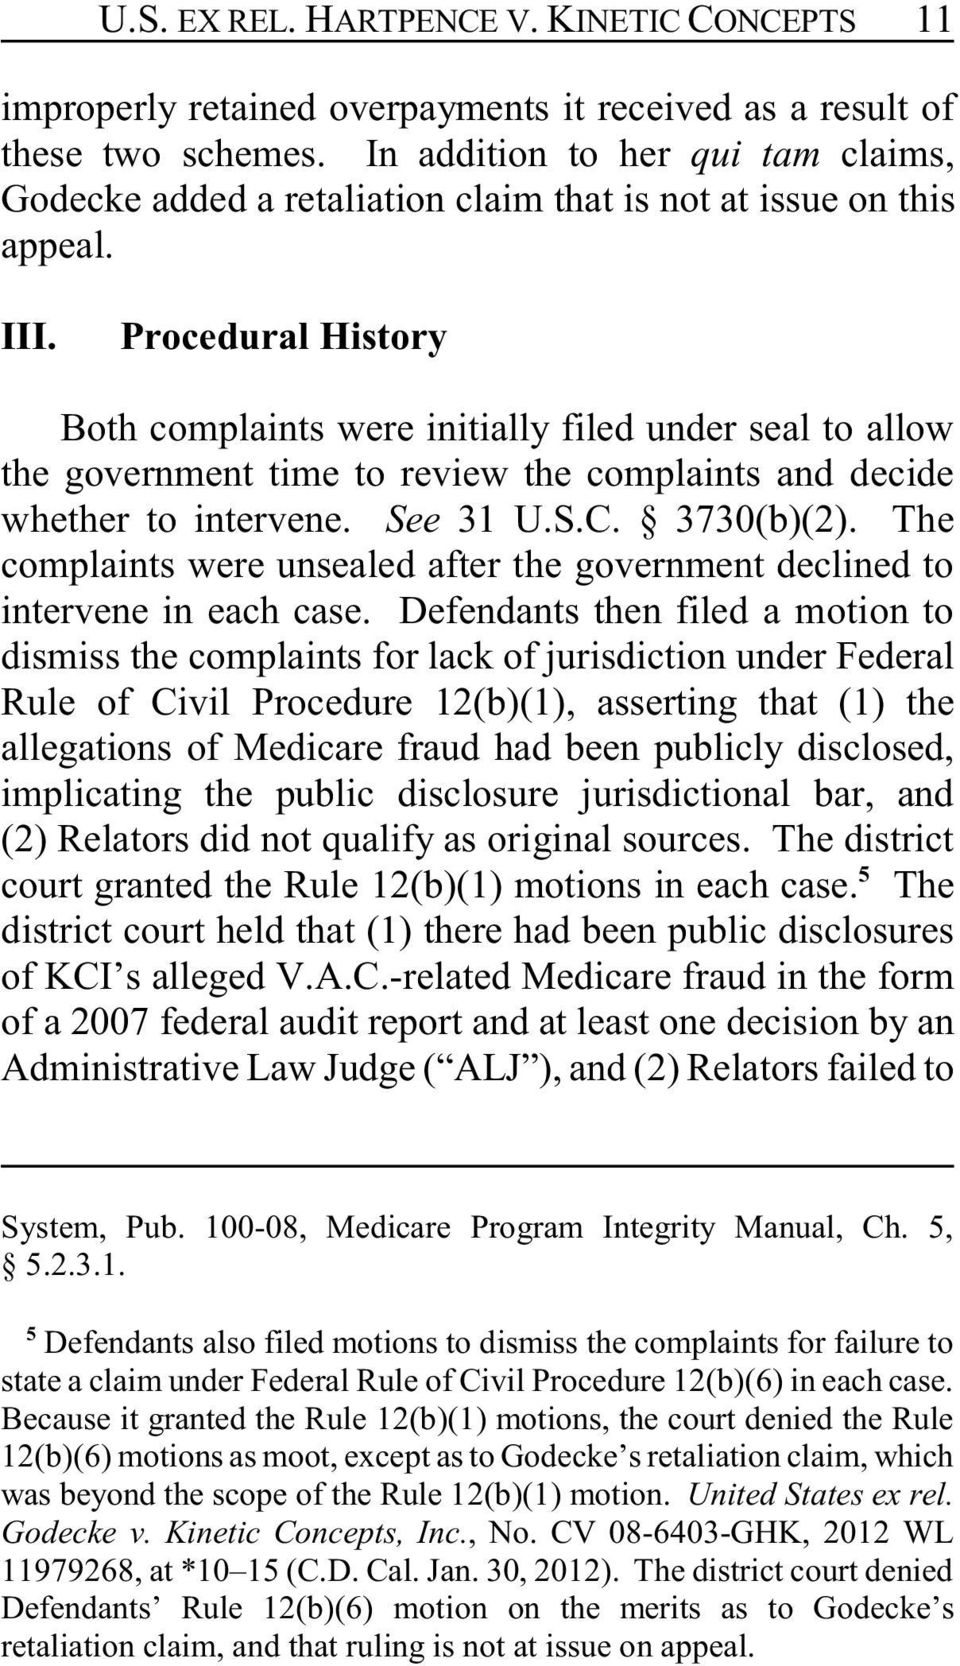 Procedural History Both complaints were initially filed under seal to allow the government time to review the complaints and decide whether to intervene. See 31 U.S.C. 3730(b)(2).